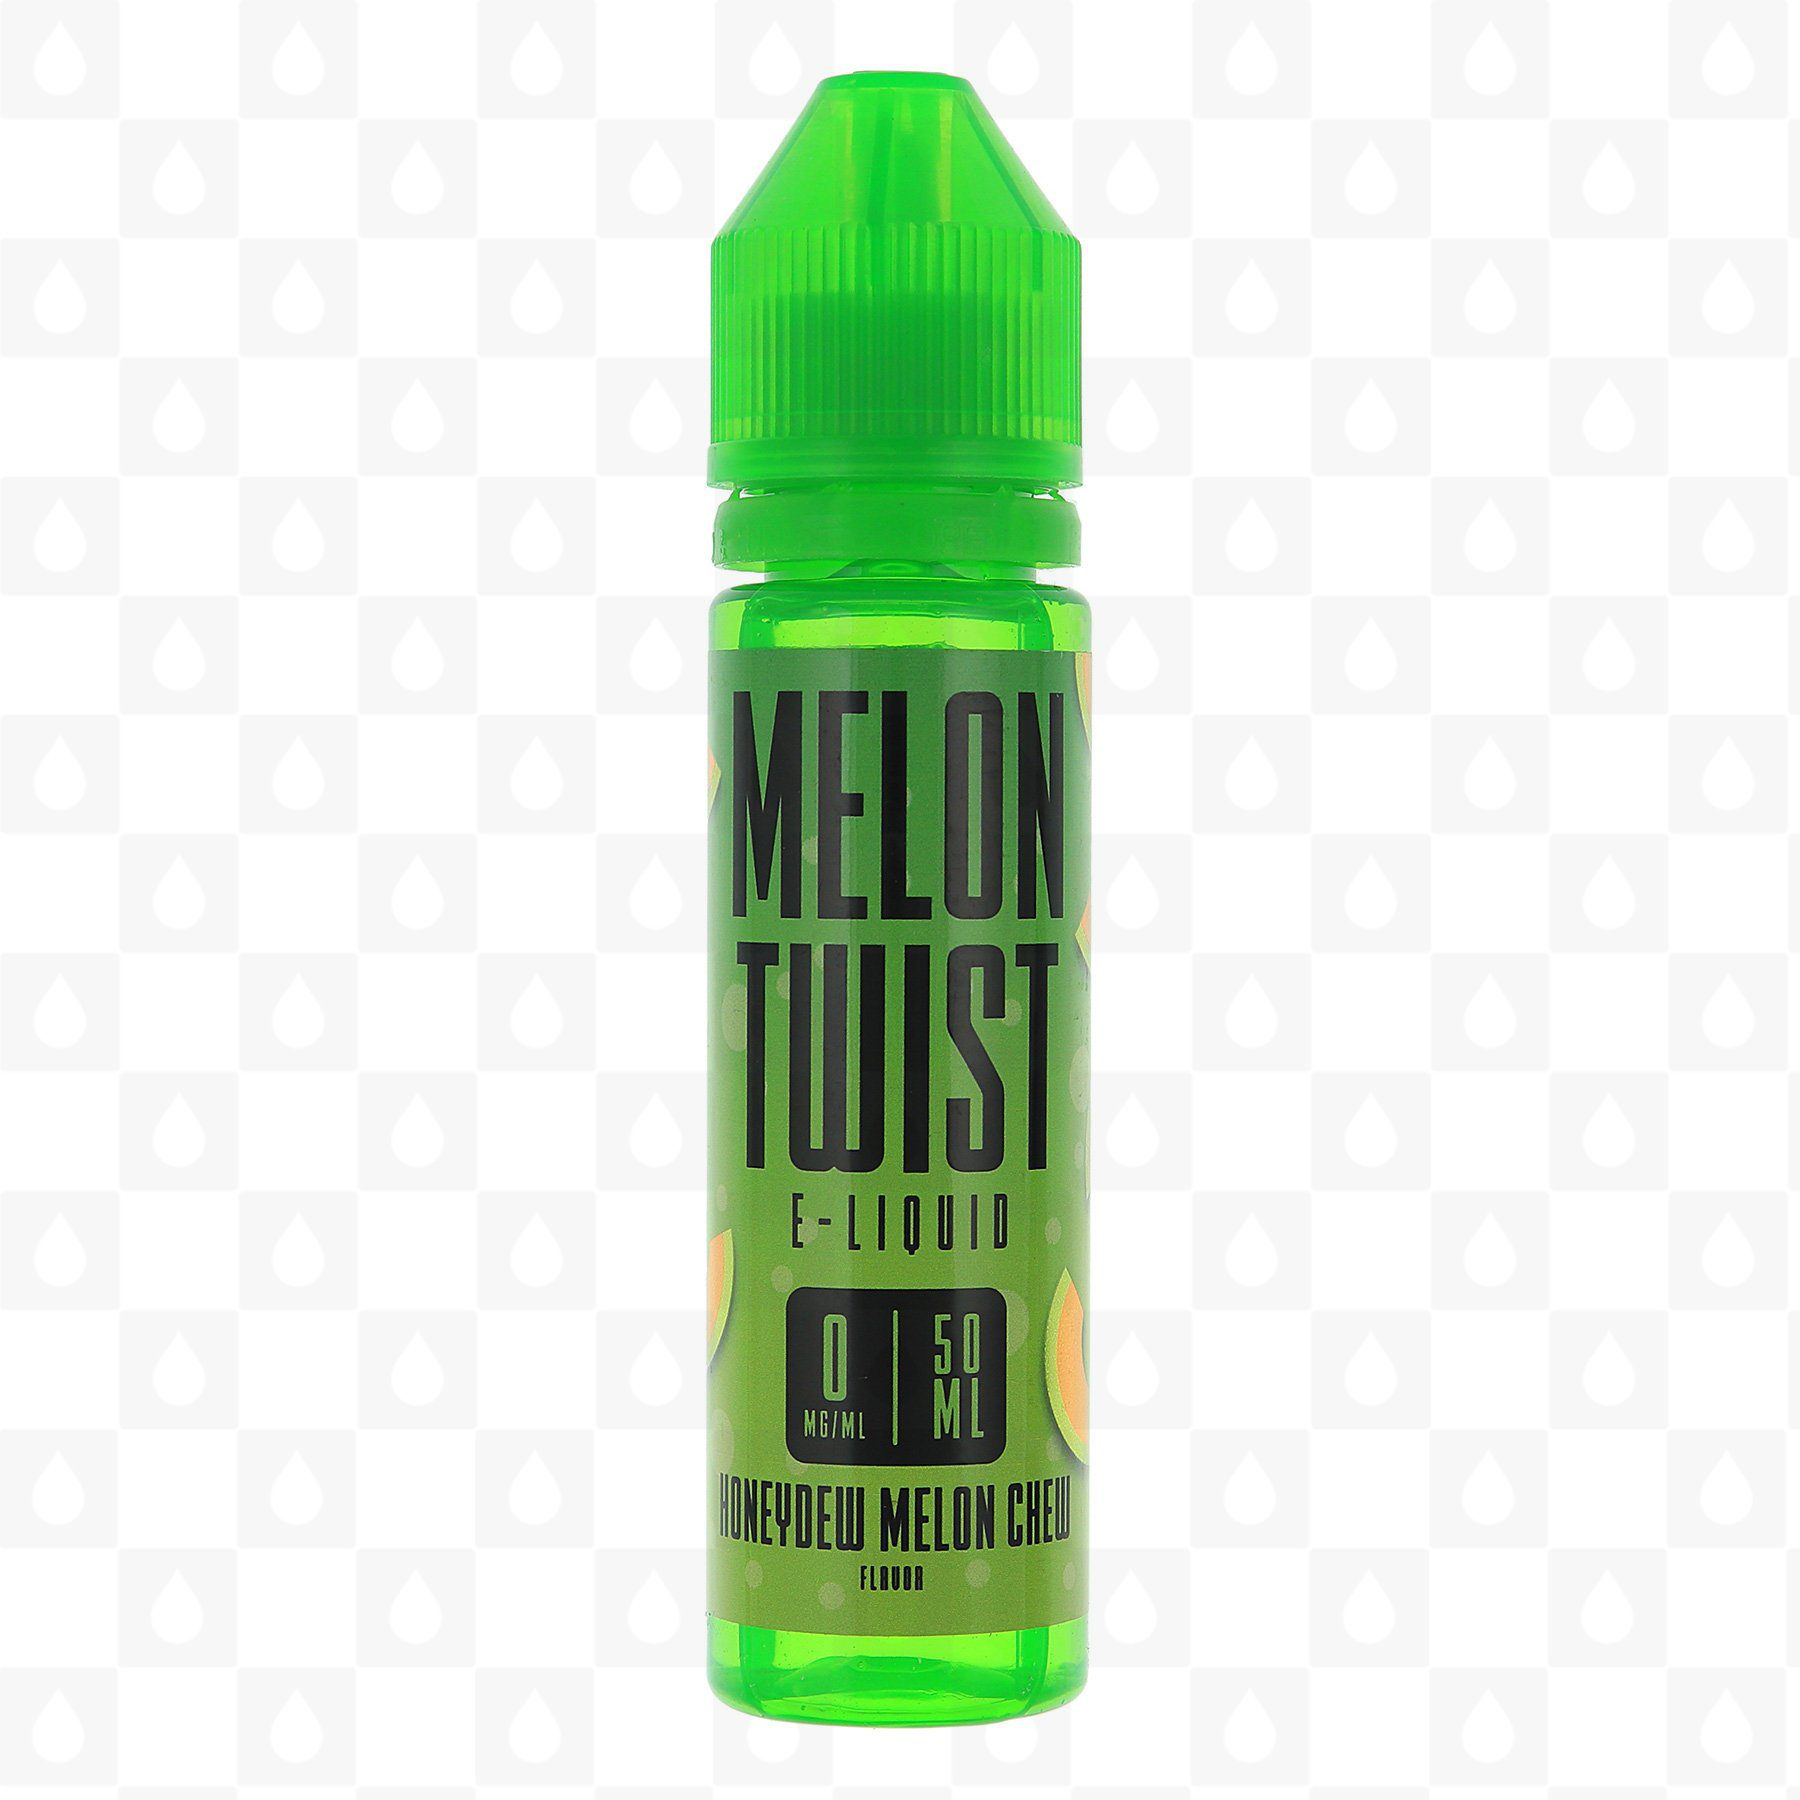 Melon Twist Honeydew Melon Chew 50ml Shortfill E-Liquid